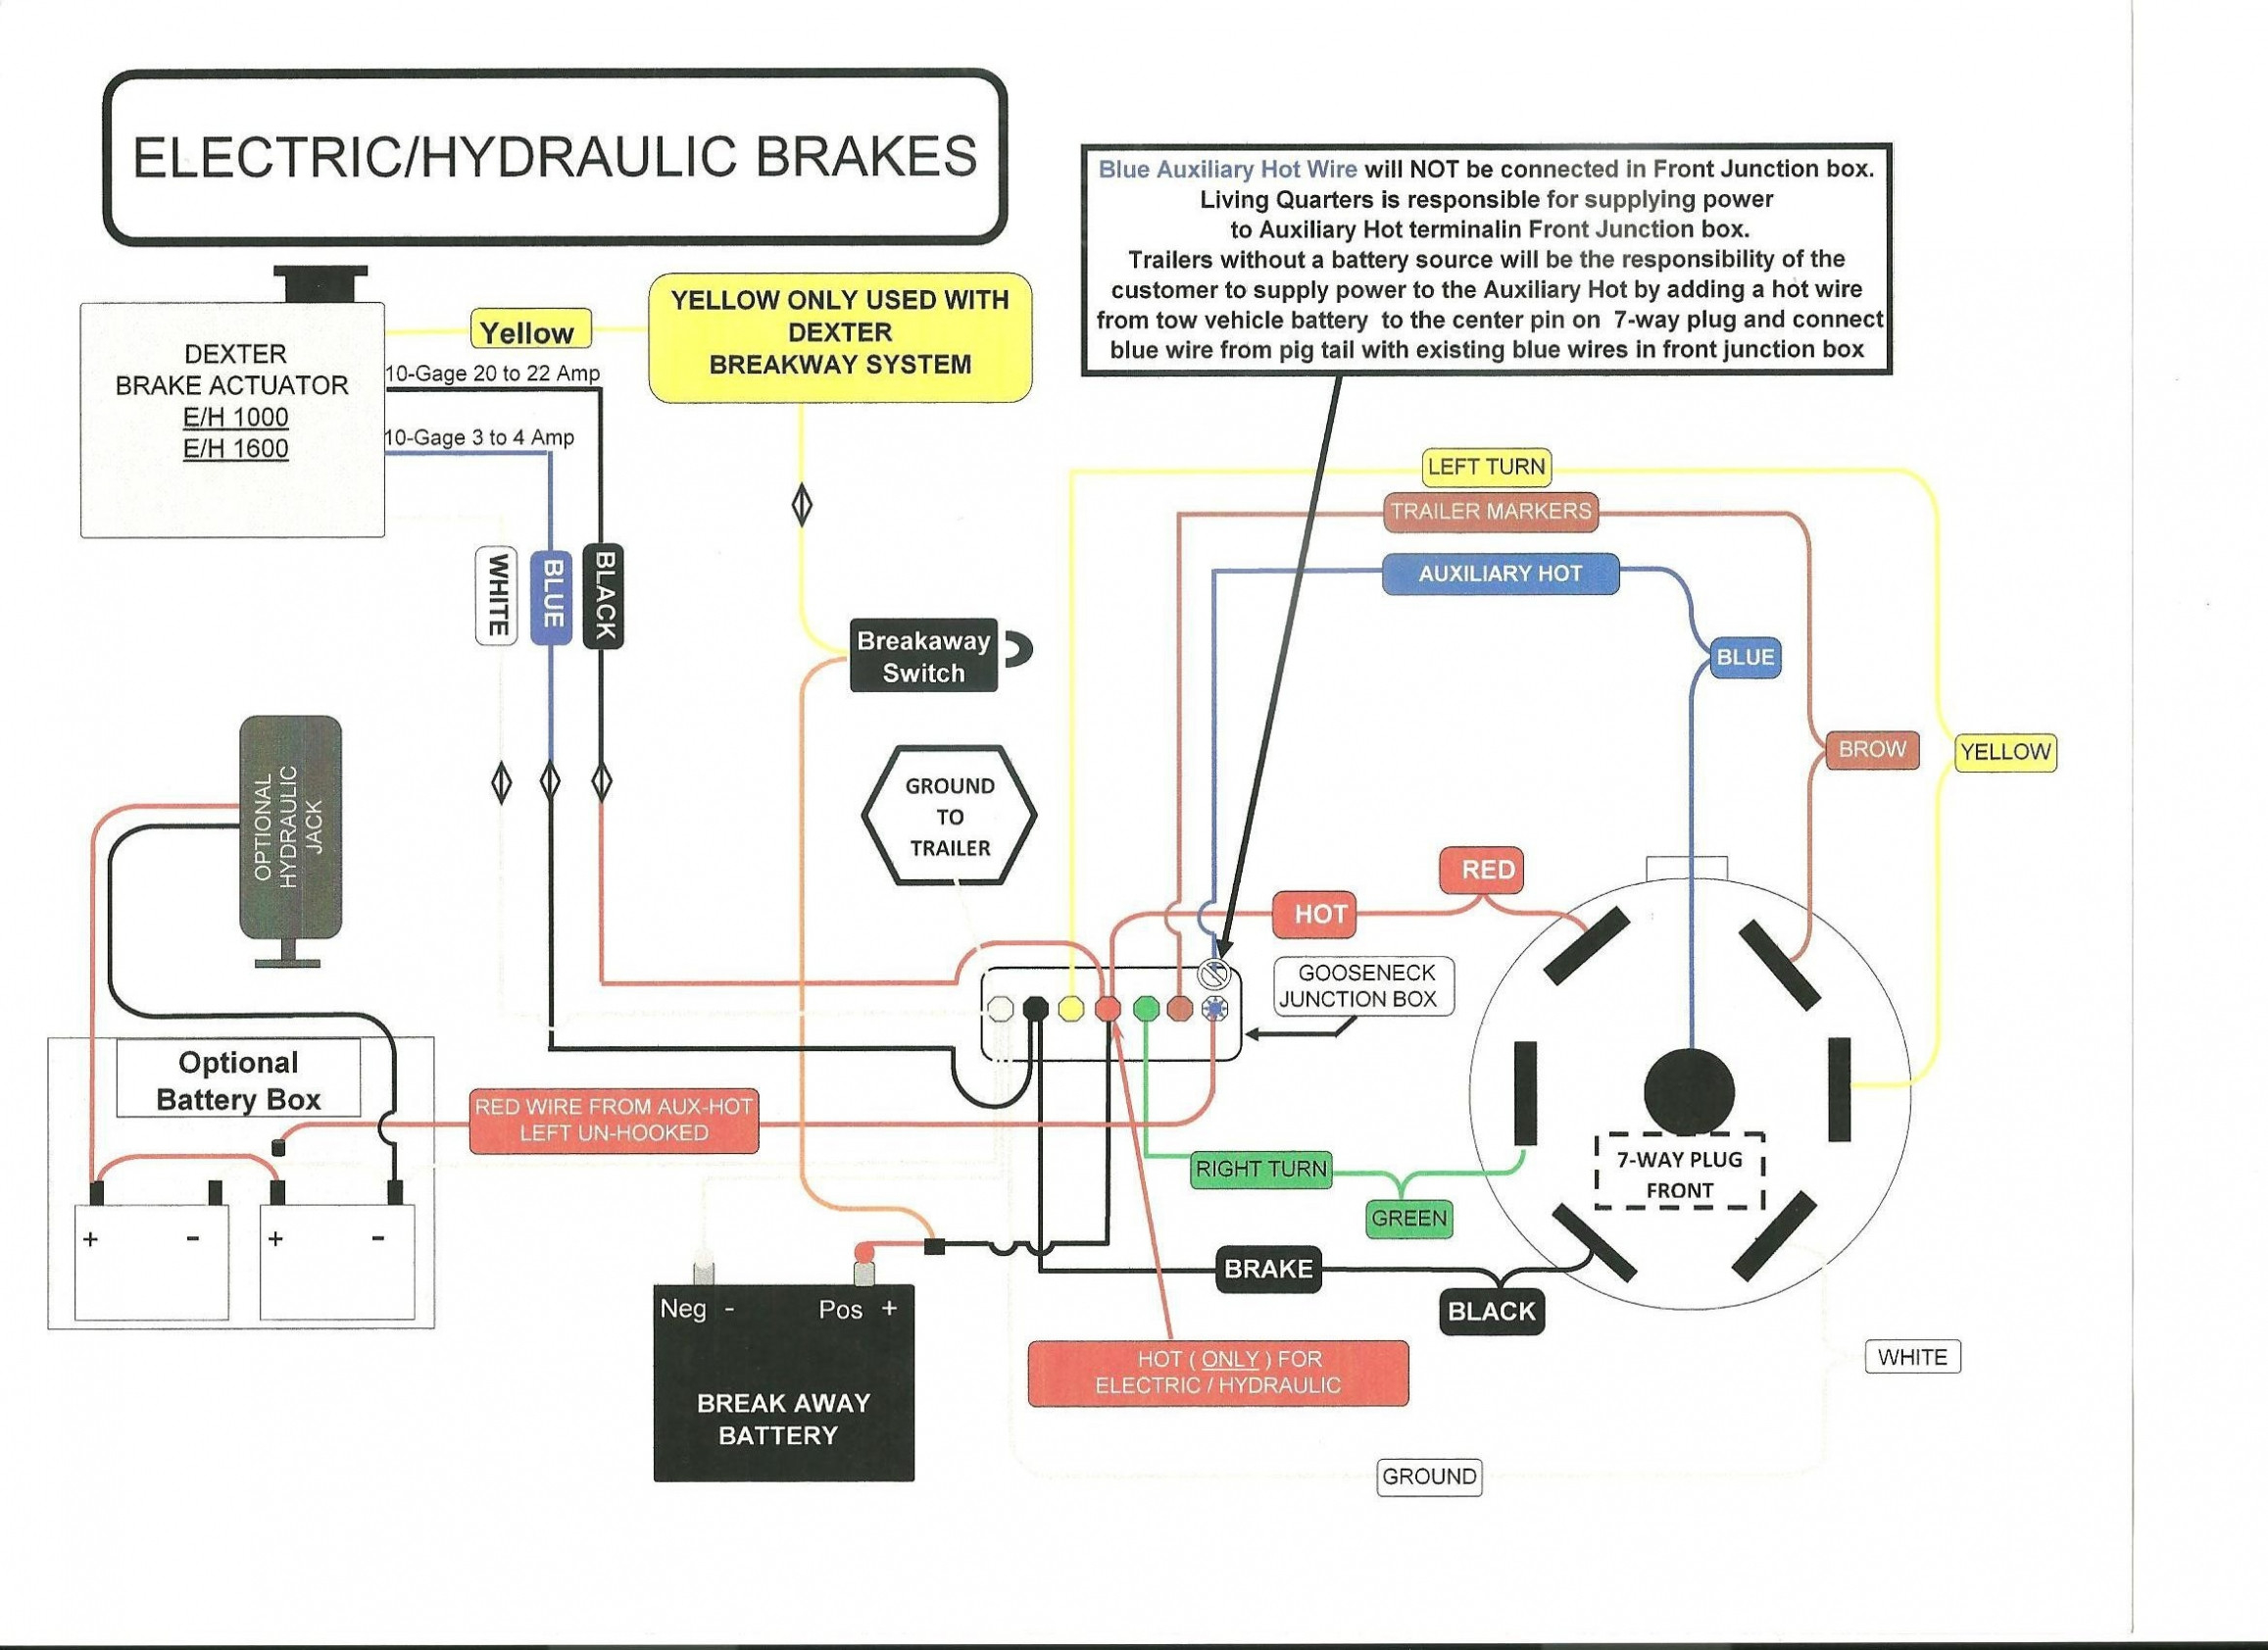 Trailer Breakaway Switch Wiring Diagram | Trailer Wiring Diagram on breakaway cable, breakaway battery hookup diagram, chevy brake light switch diagram, breakaway switch diagram, power tech trailer breakaway battery diagram, breakaway battery wiring,